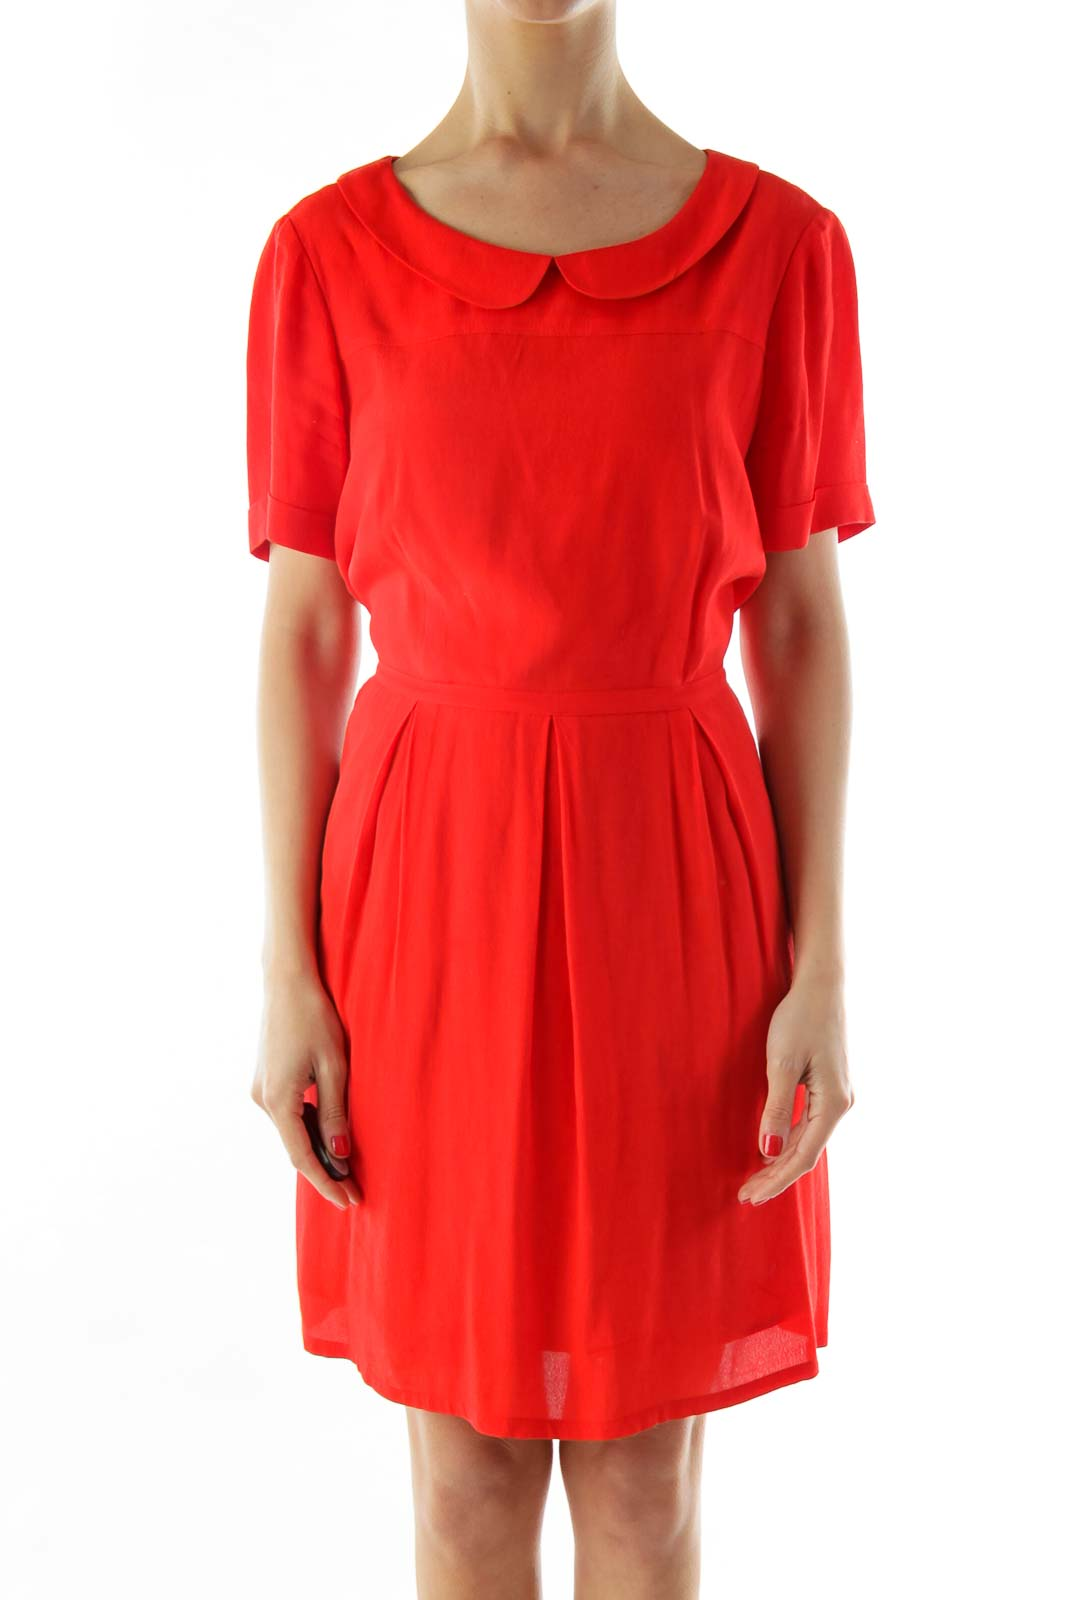 Red Short Sleeve Collared Work Dress Front